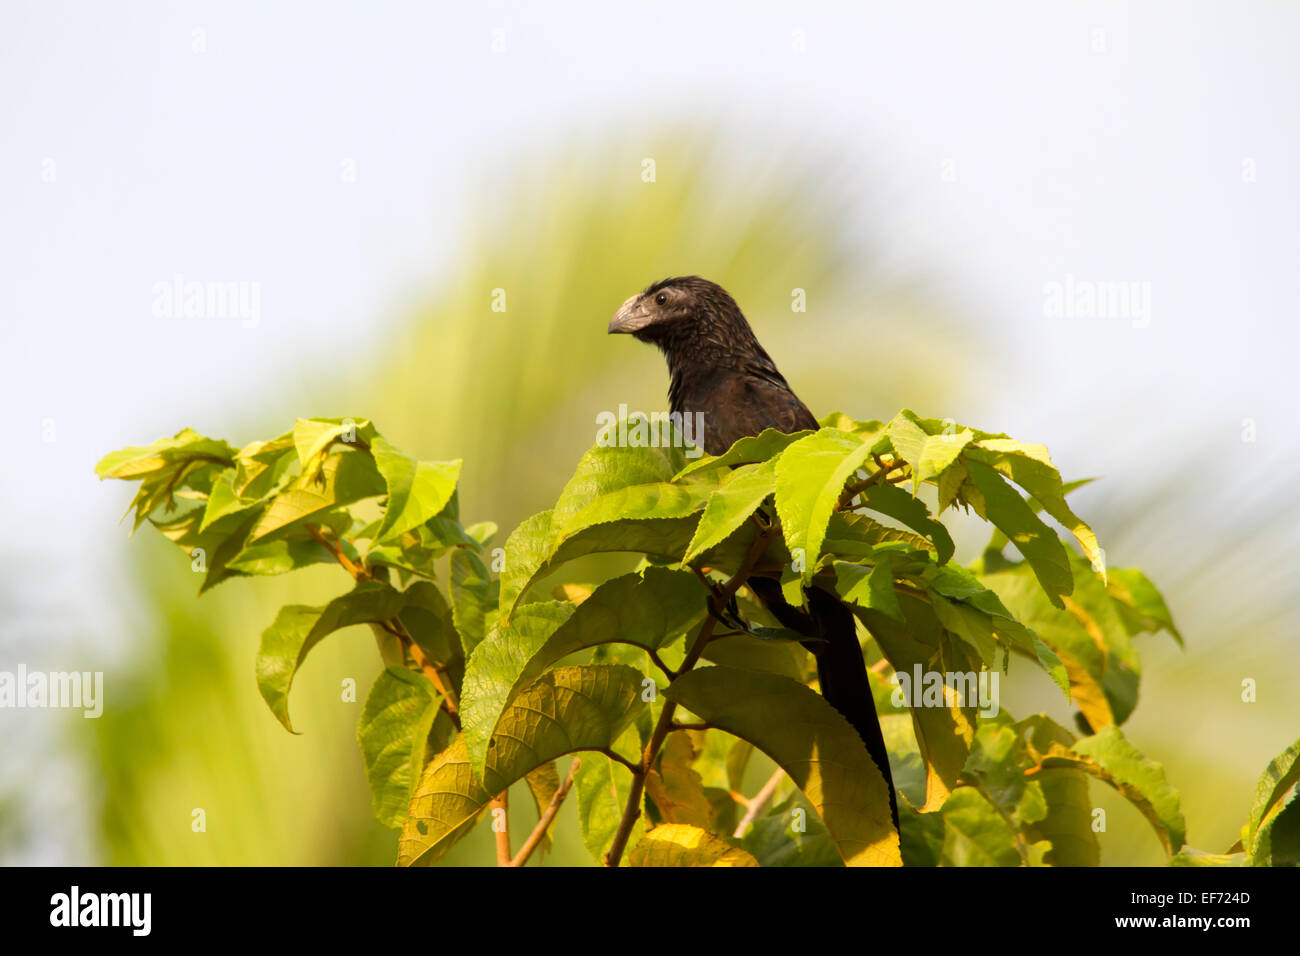 Groove-billed Ani (Crotophaga sulcirostris) perched in the top of a tree. - Stock Image